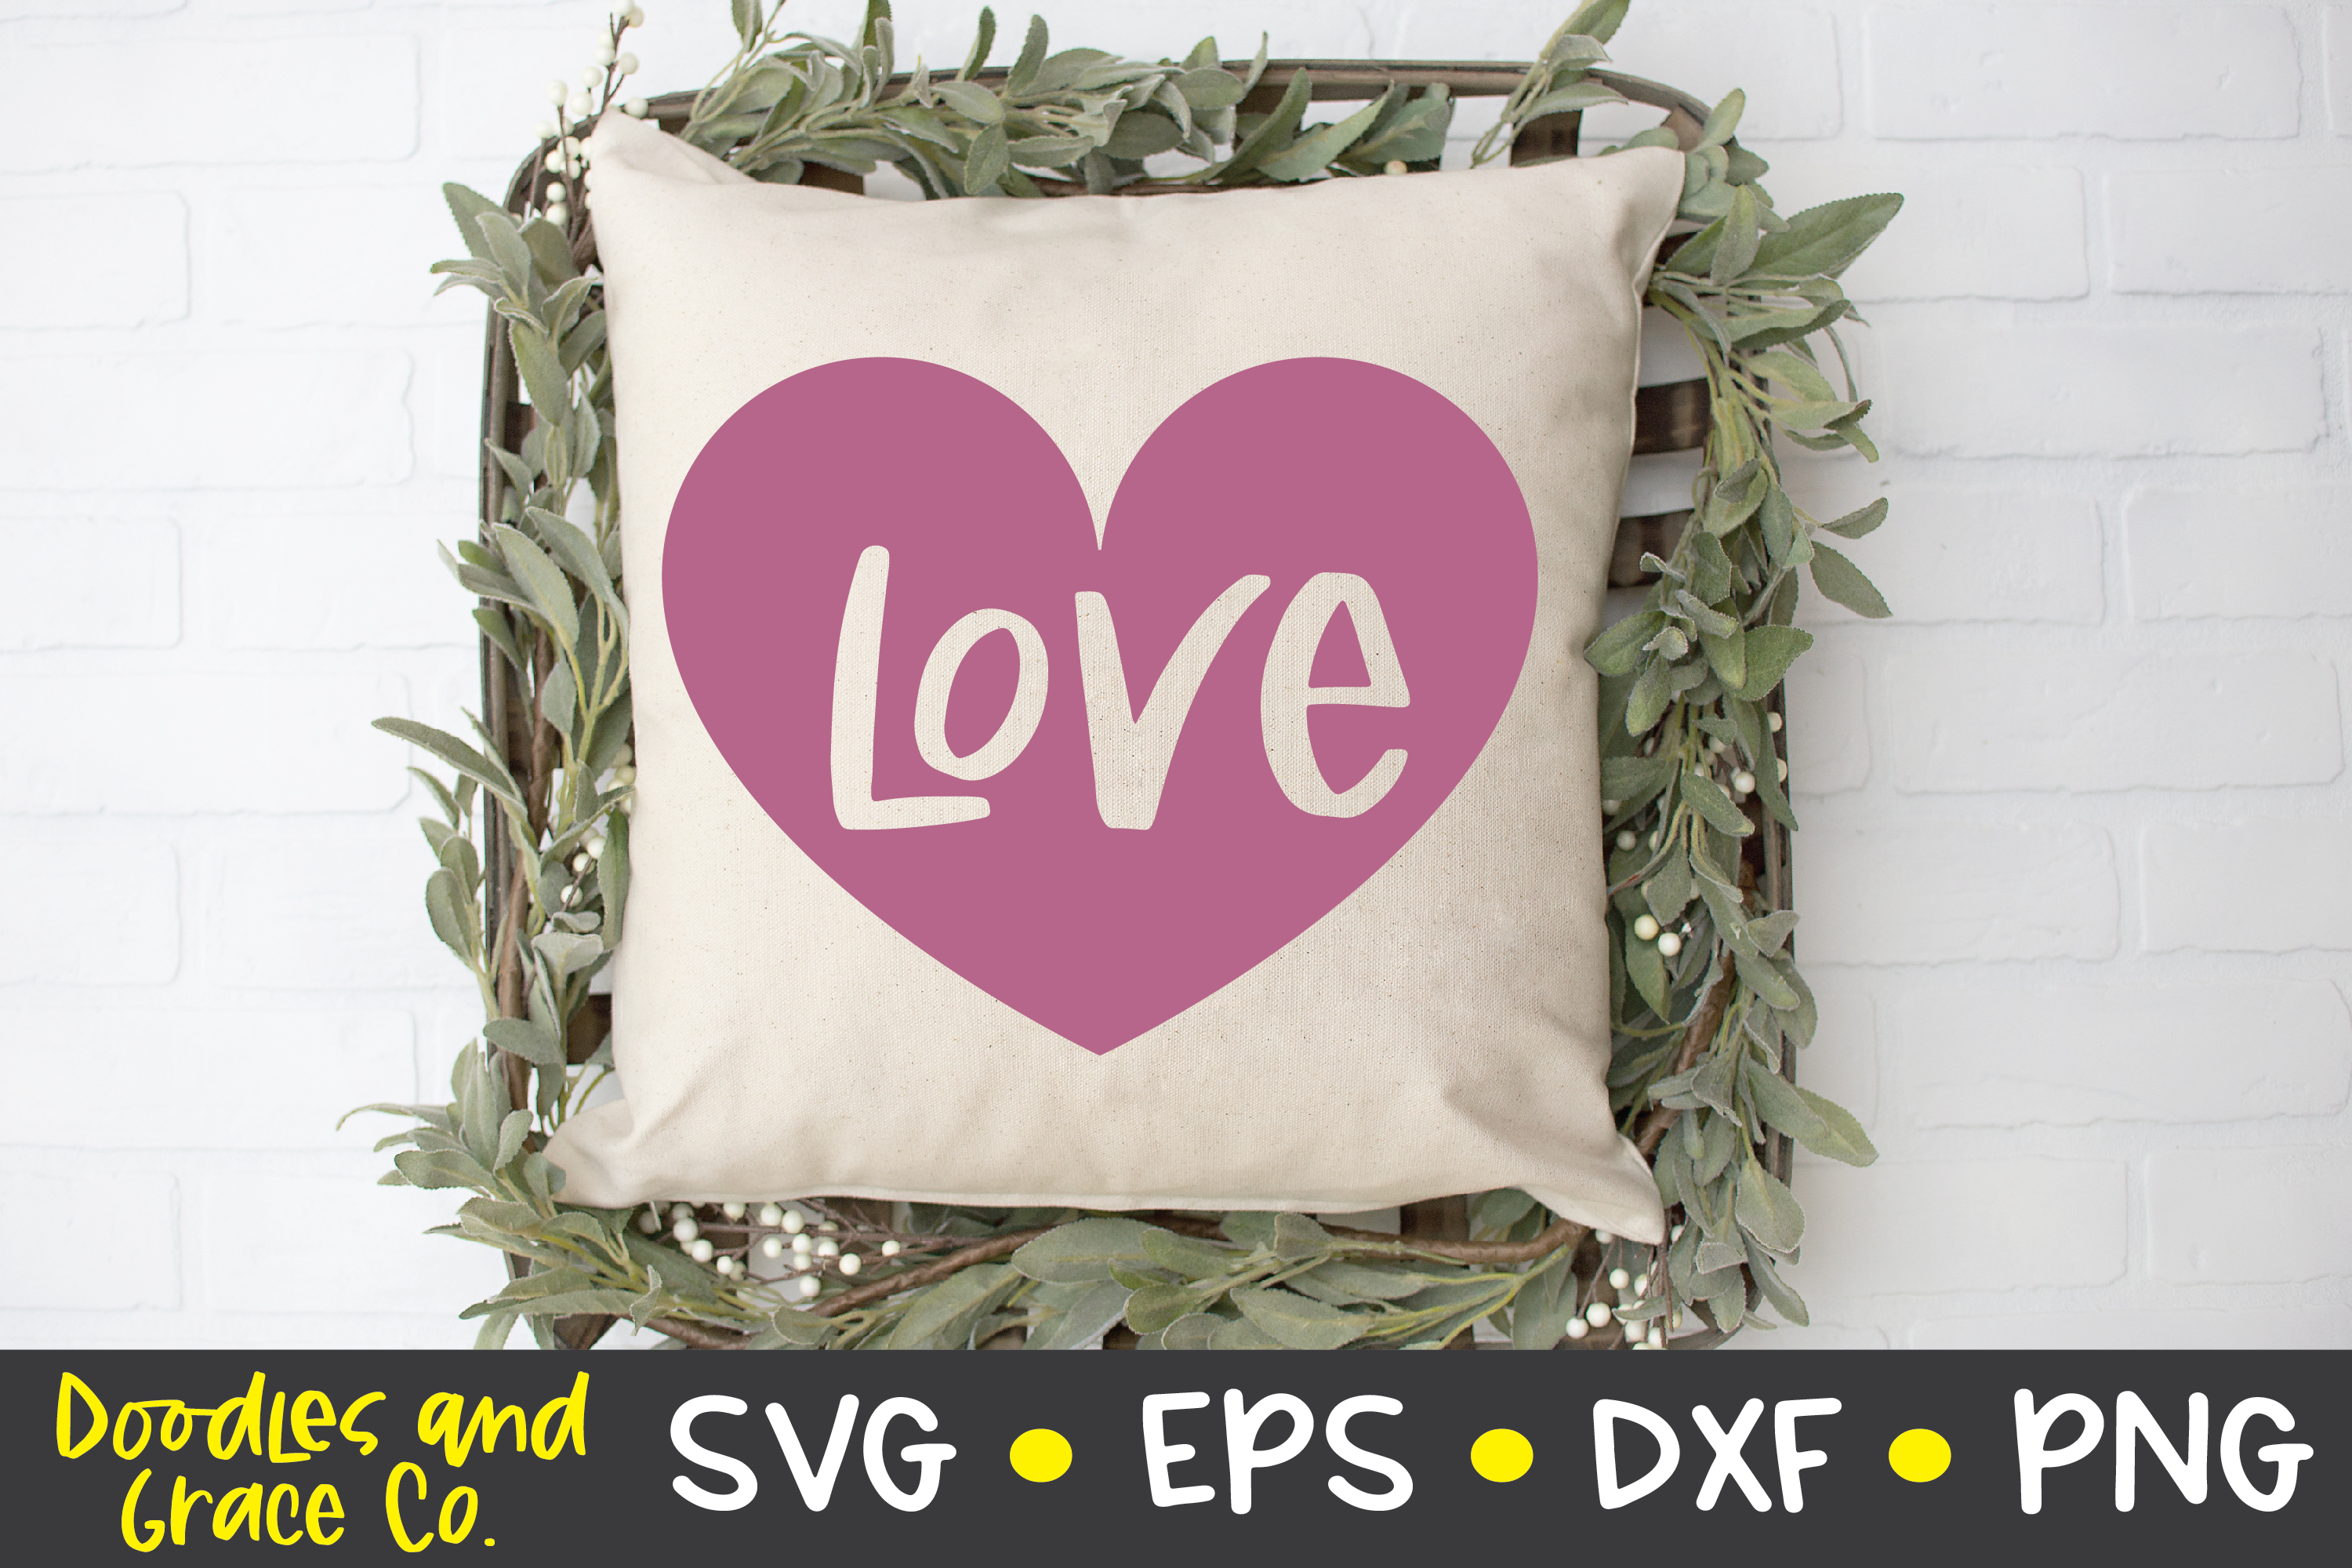 Love Heart SVG - DXF - EPS - PNG example image 3